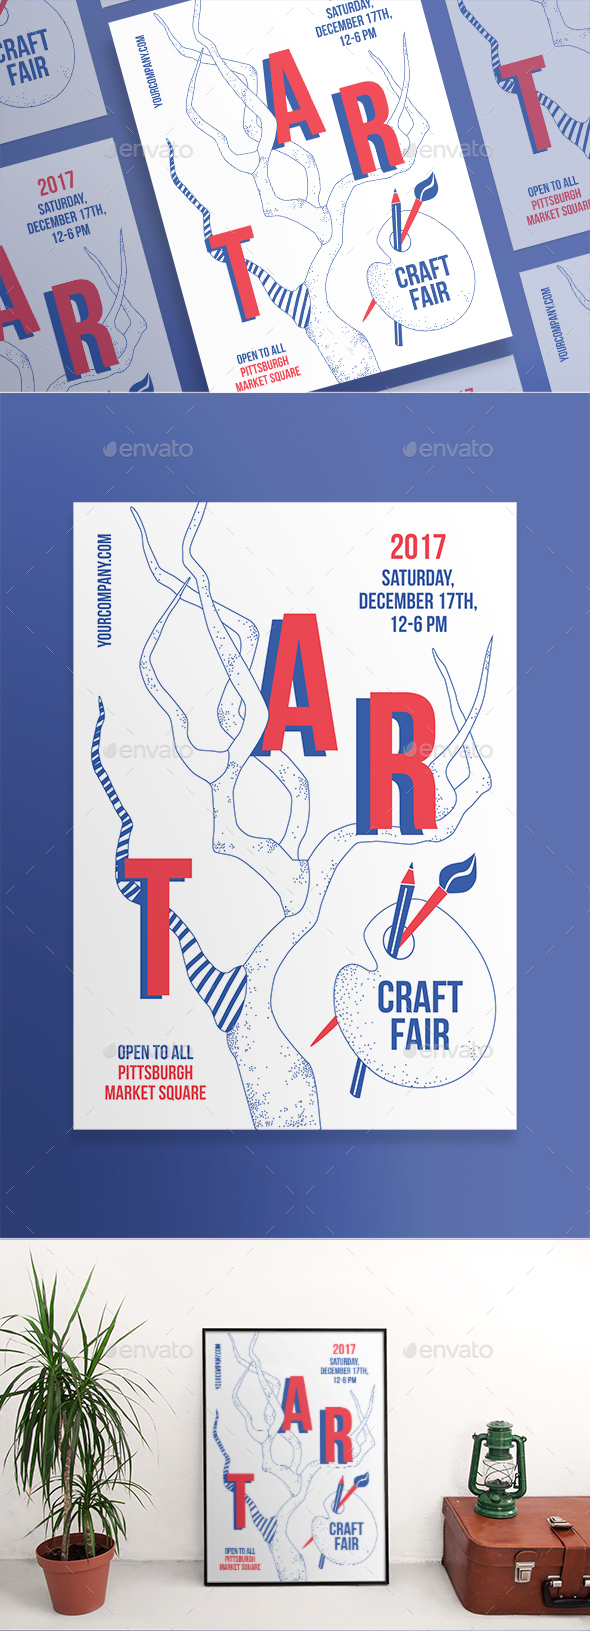 Craft Fair Posters - Miscellaneous Events